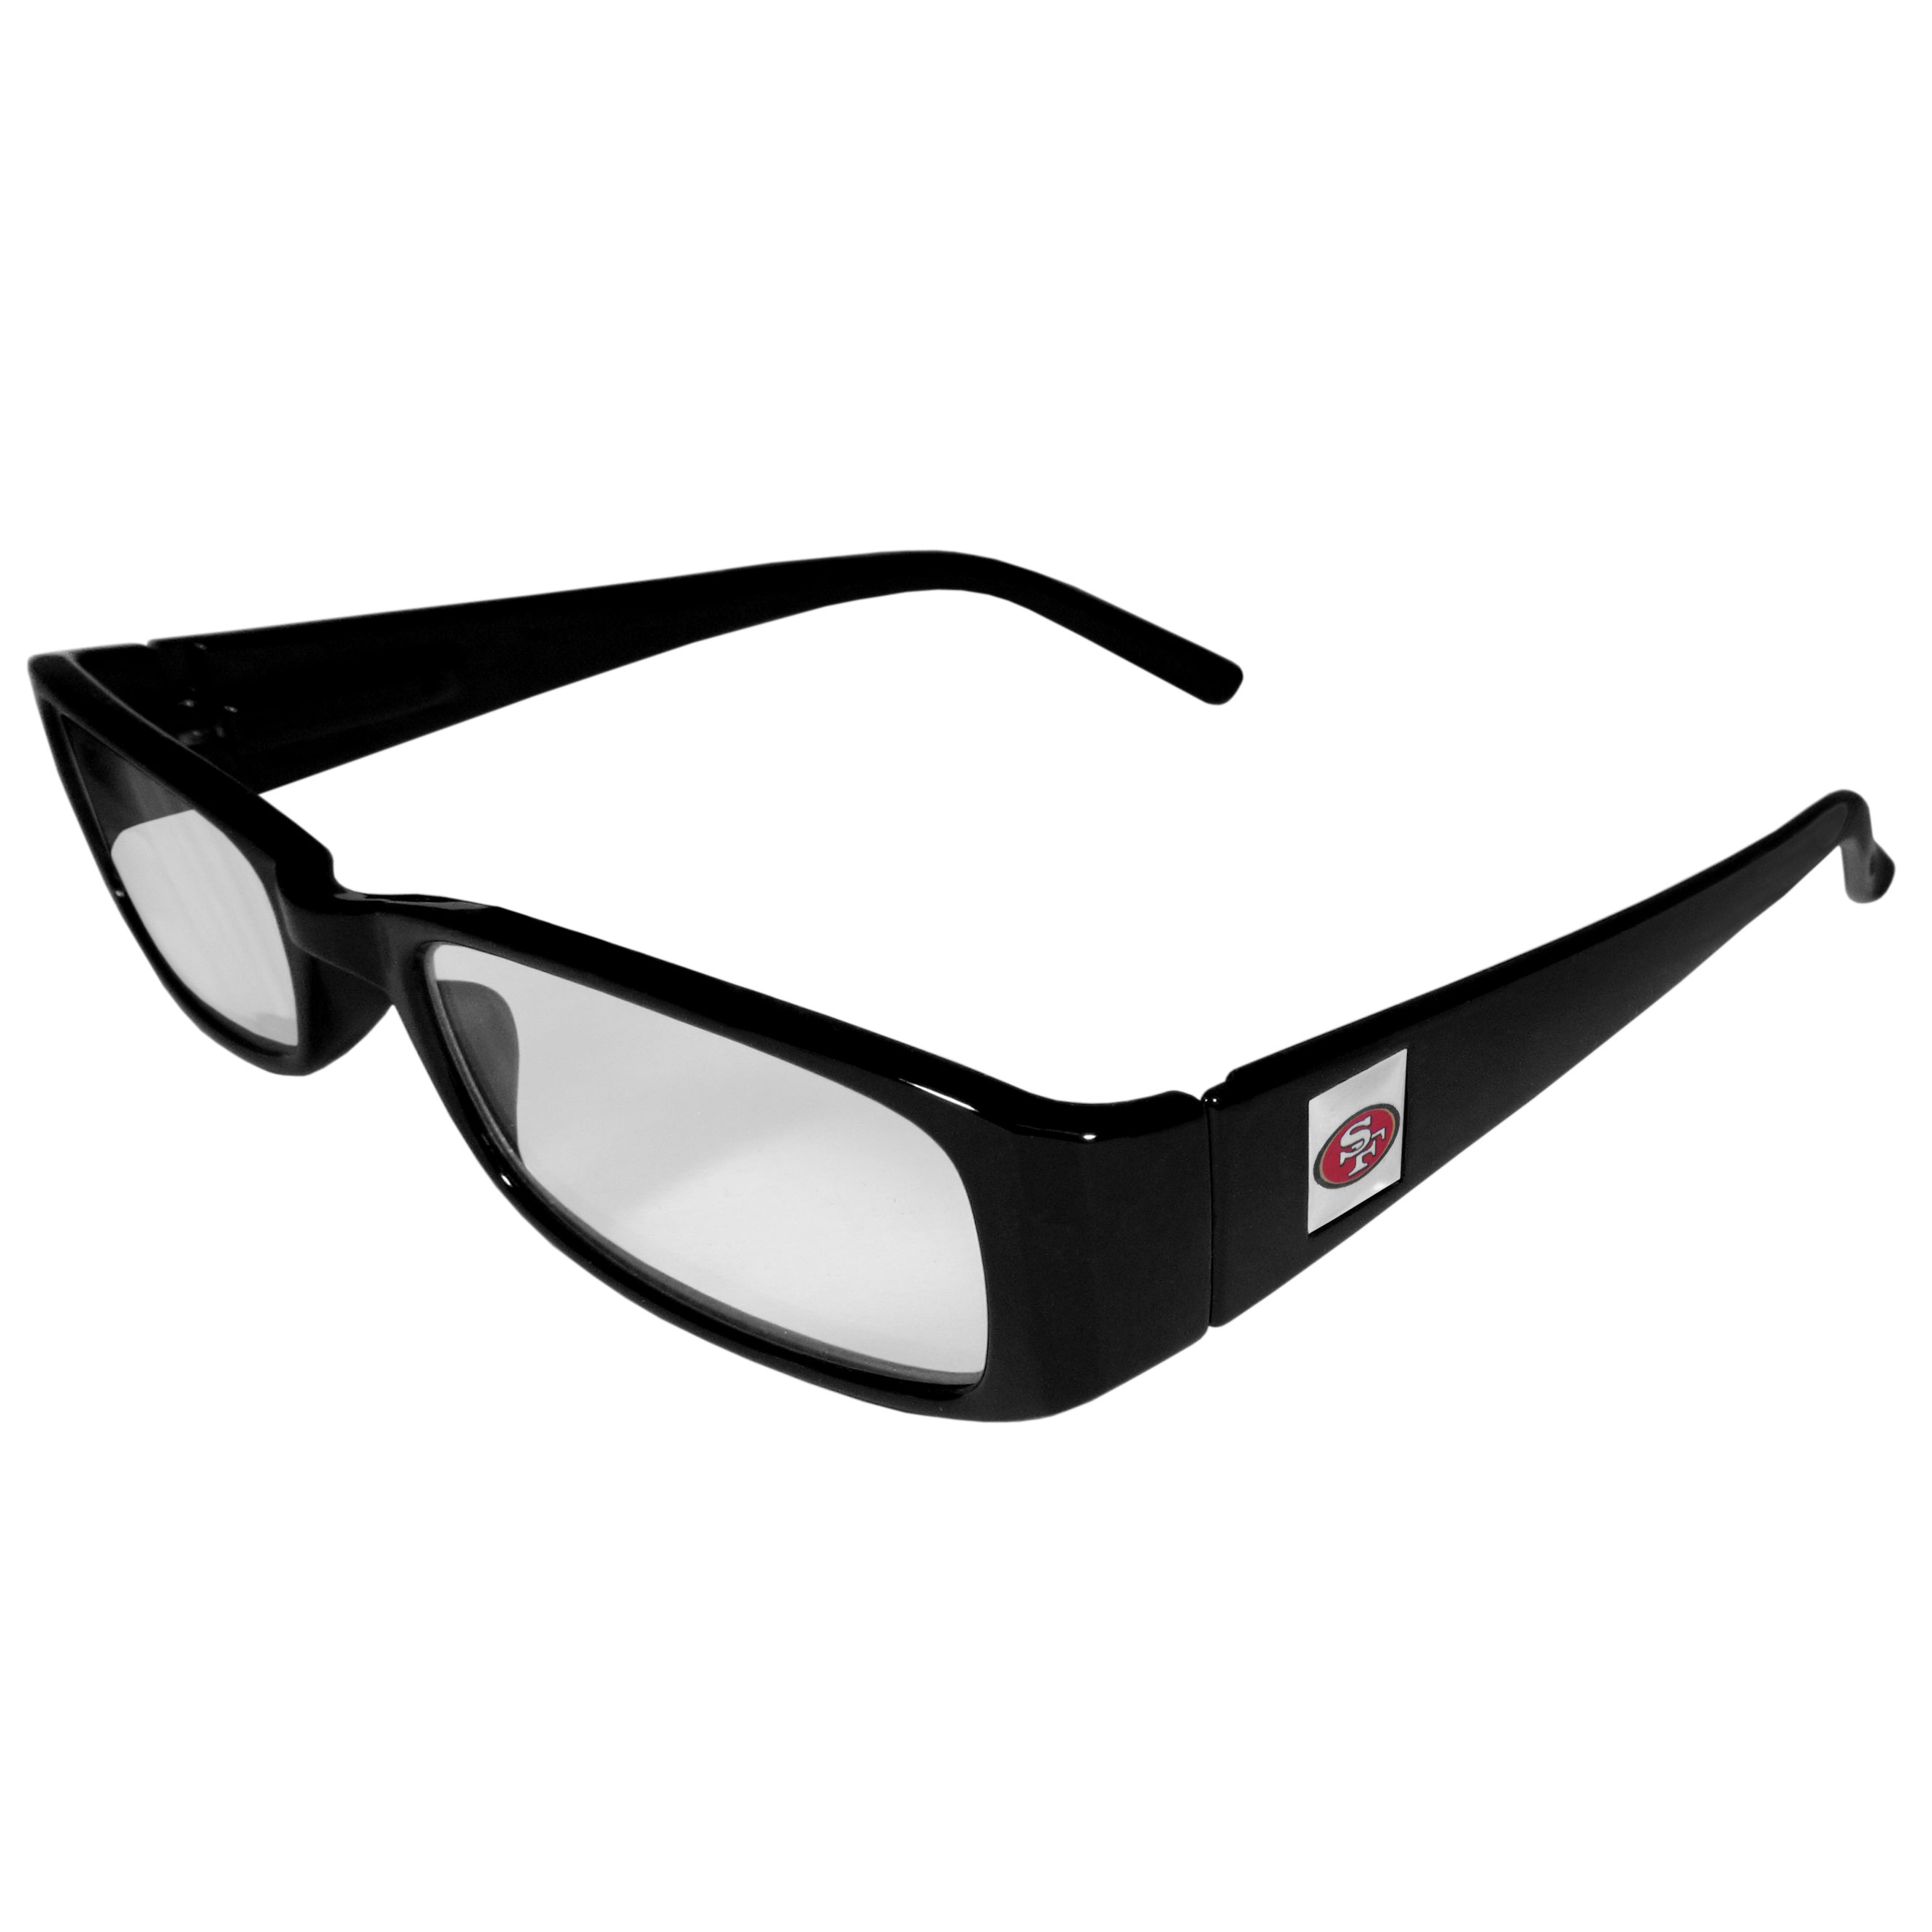 San Francisco 49ers Black Reading Glasses +1.25 - Our San Francisco 49ers reading glasses are 5.25 inches wide and feature the team logo on each arm. Magnification Power 1.25